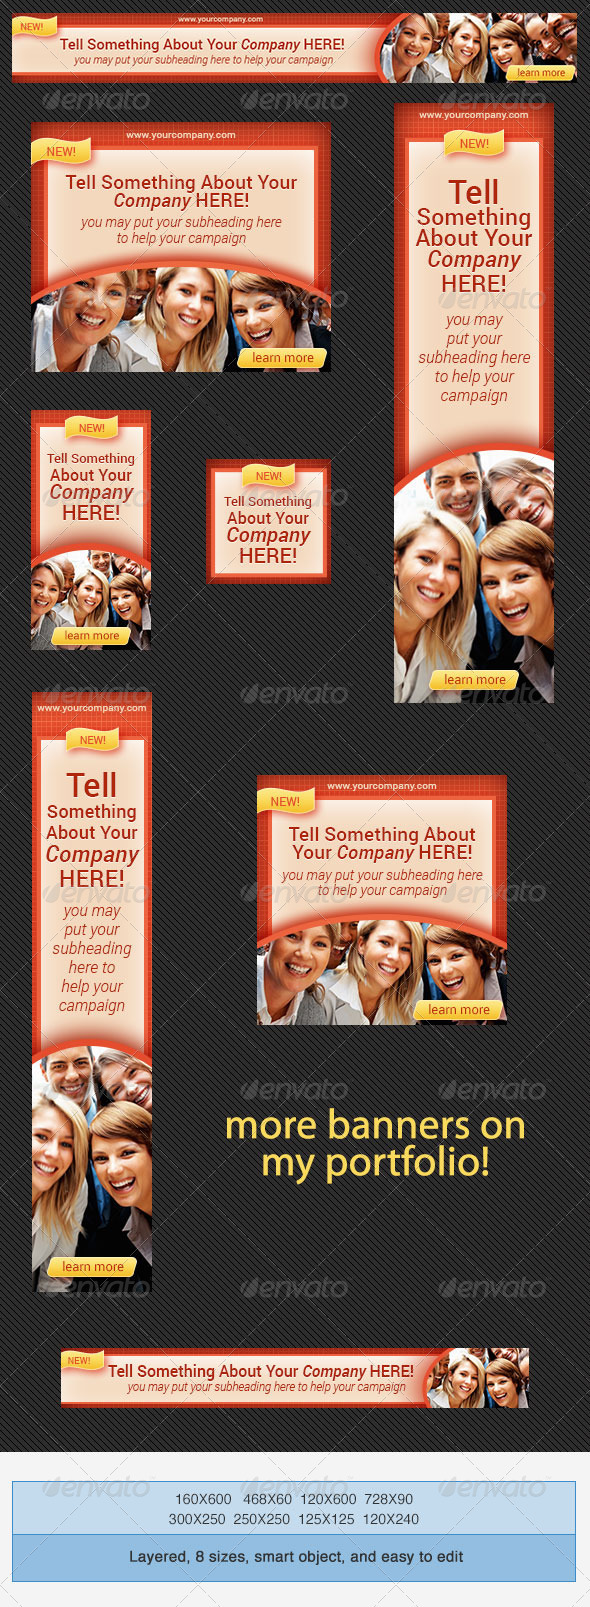 Corporate PSD Banner Ad Template 6